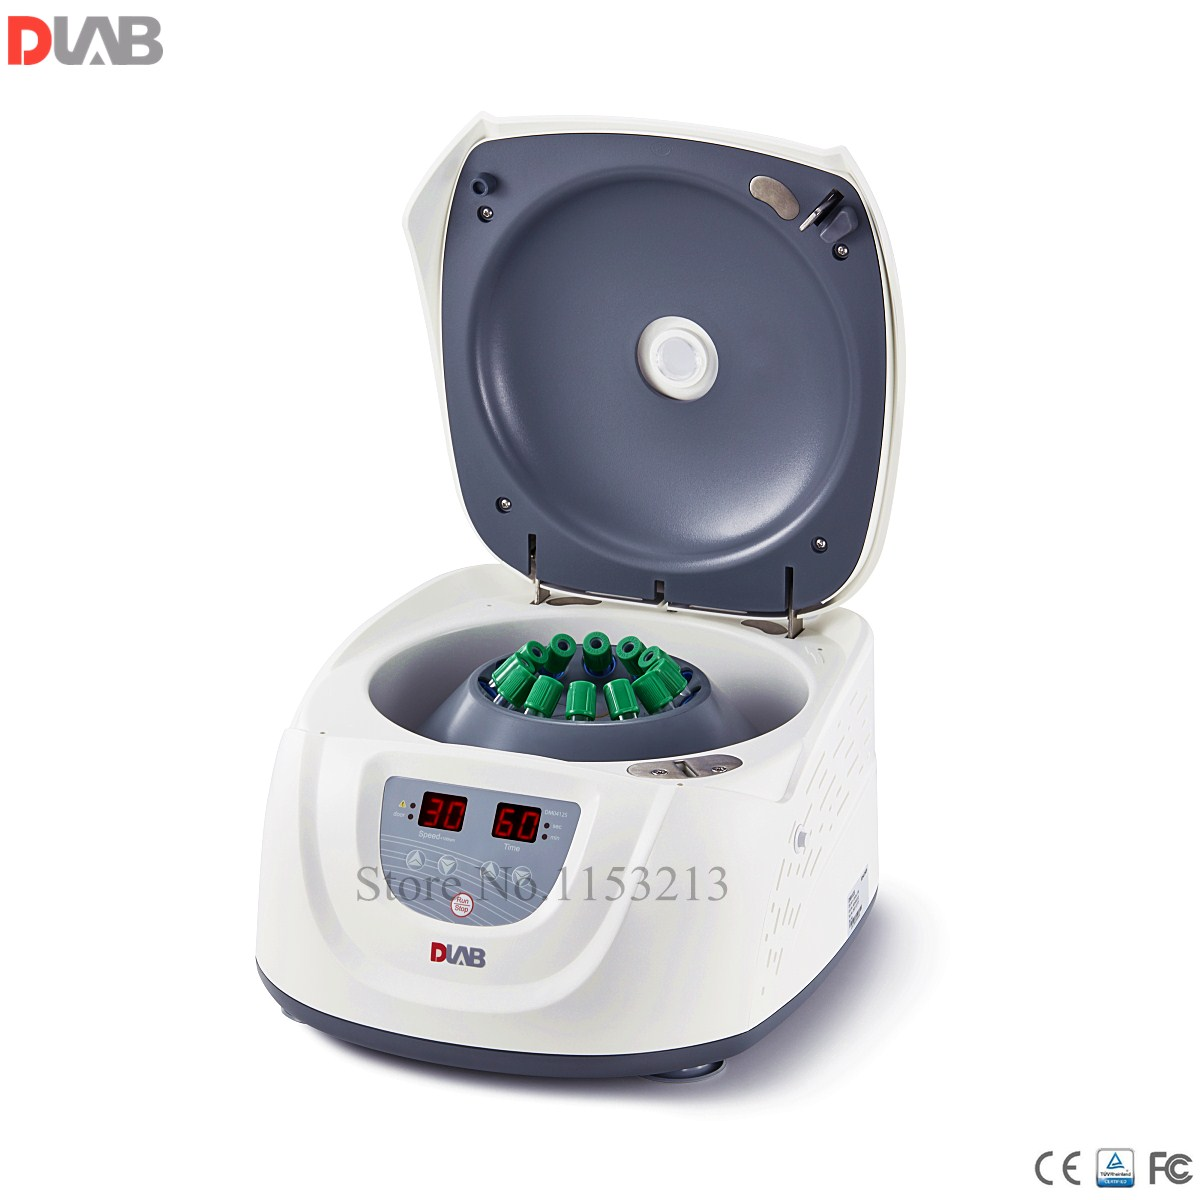 Dragon lab DM0412S Economic type Clinical Centrifuge 15ml*8, or 10ml/7ml/5ml*12, Dlab Slow Speed Centrifuge 300-4500rpm DC motor lab series 15ml